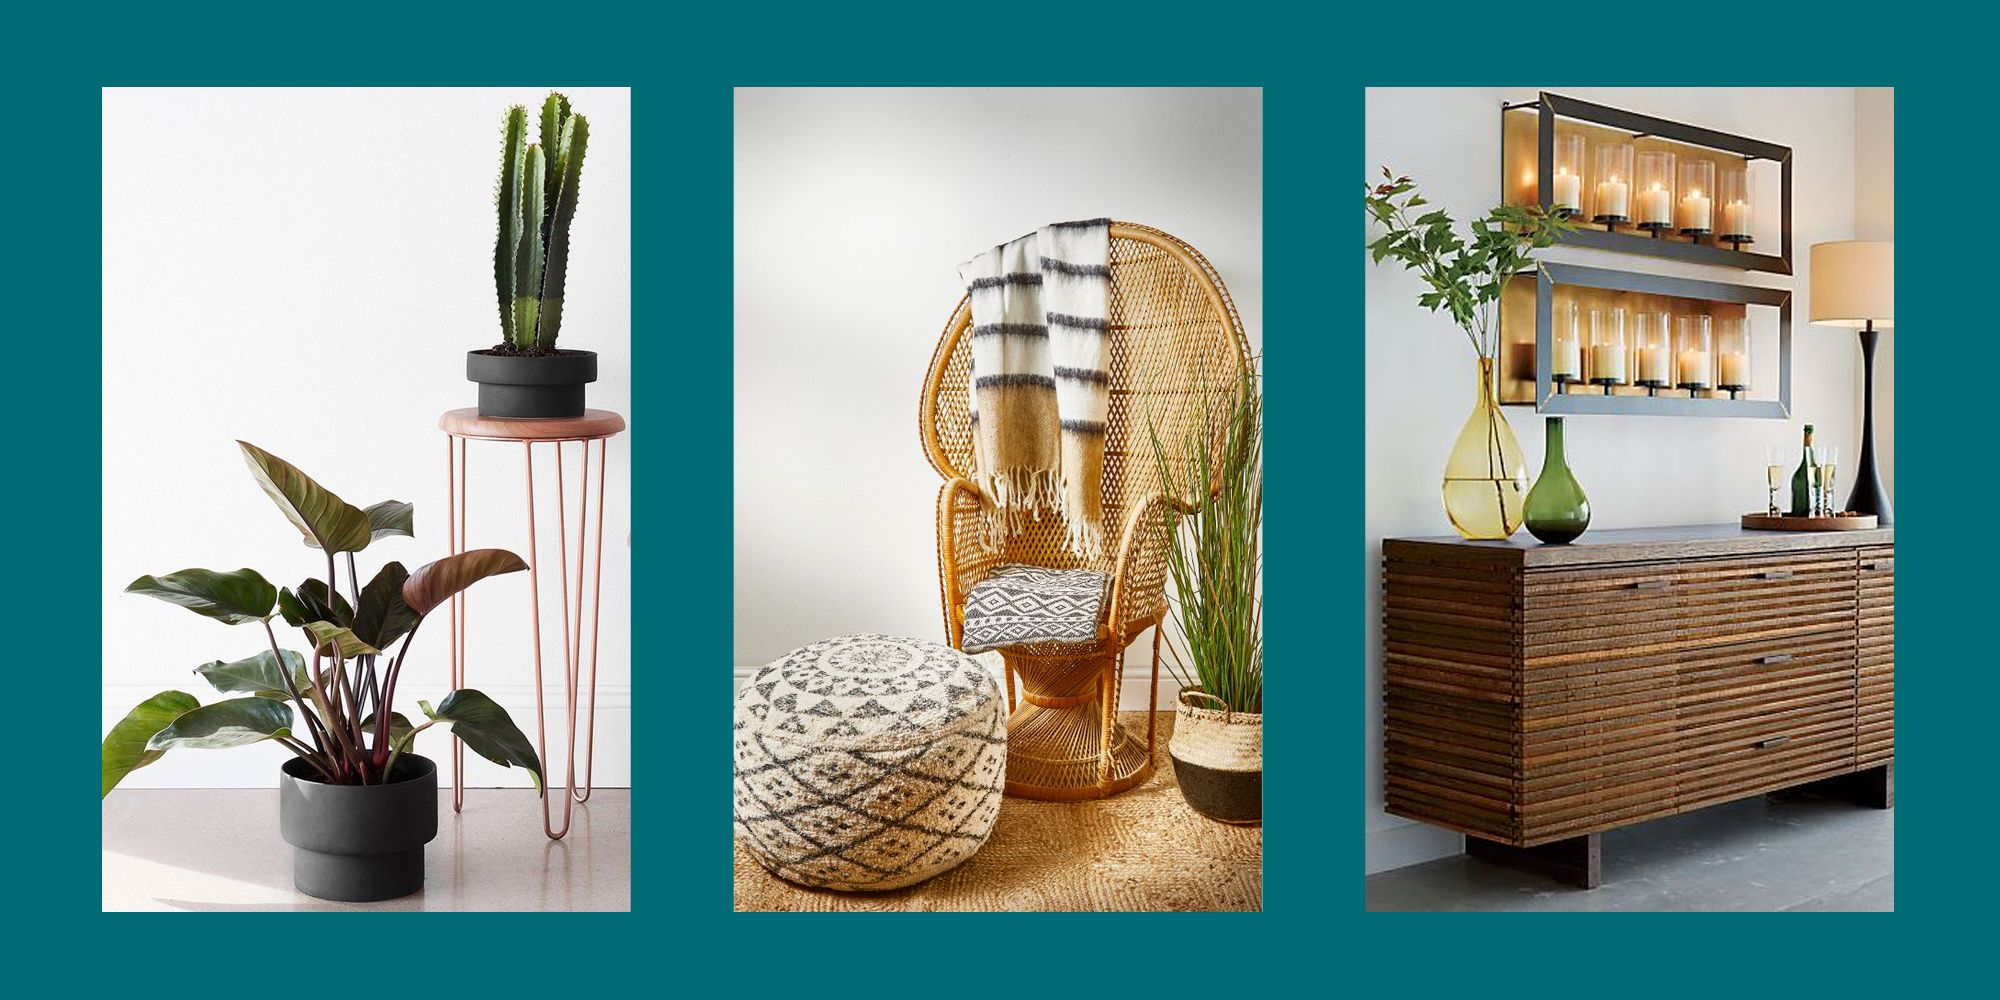 10 Stand-Out Places to Buy Eco-Friendly Furniture